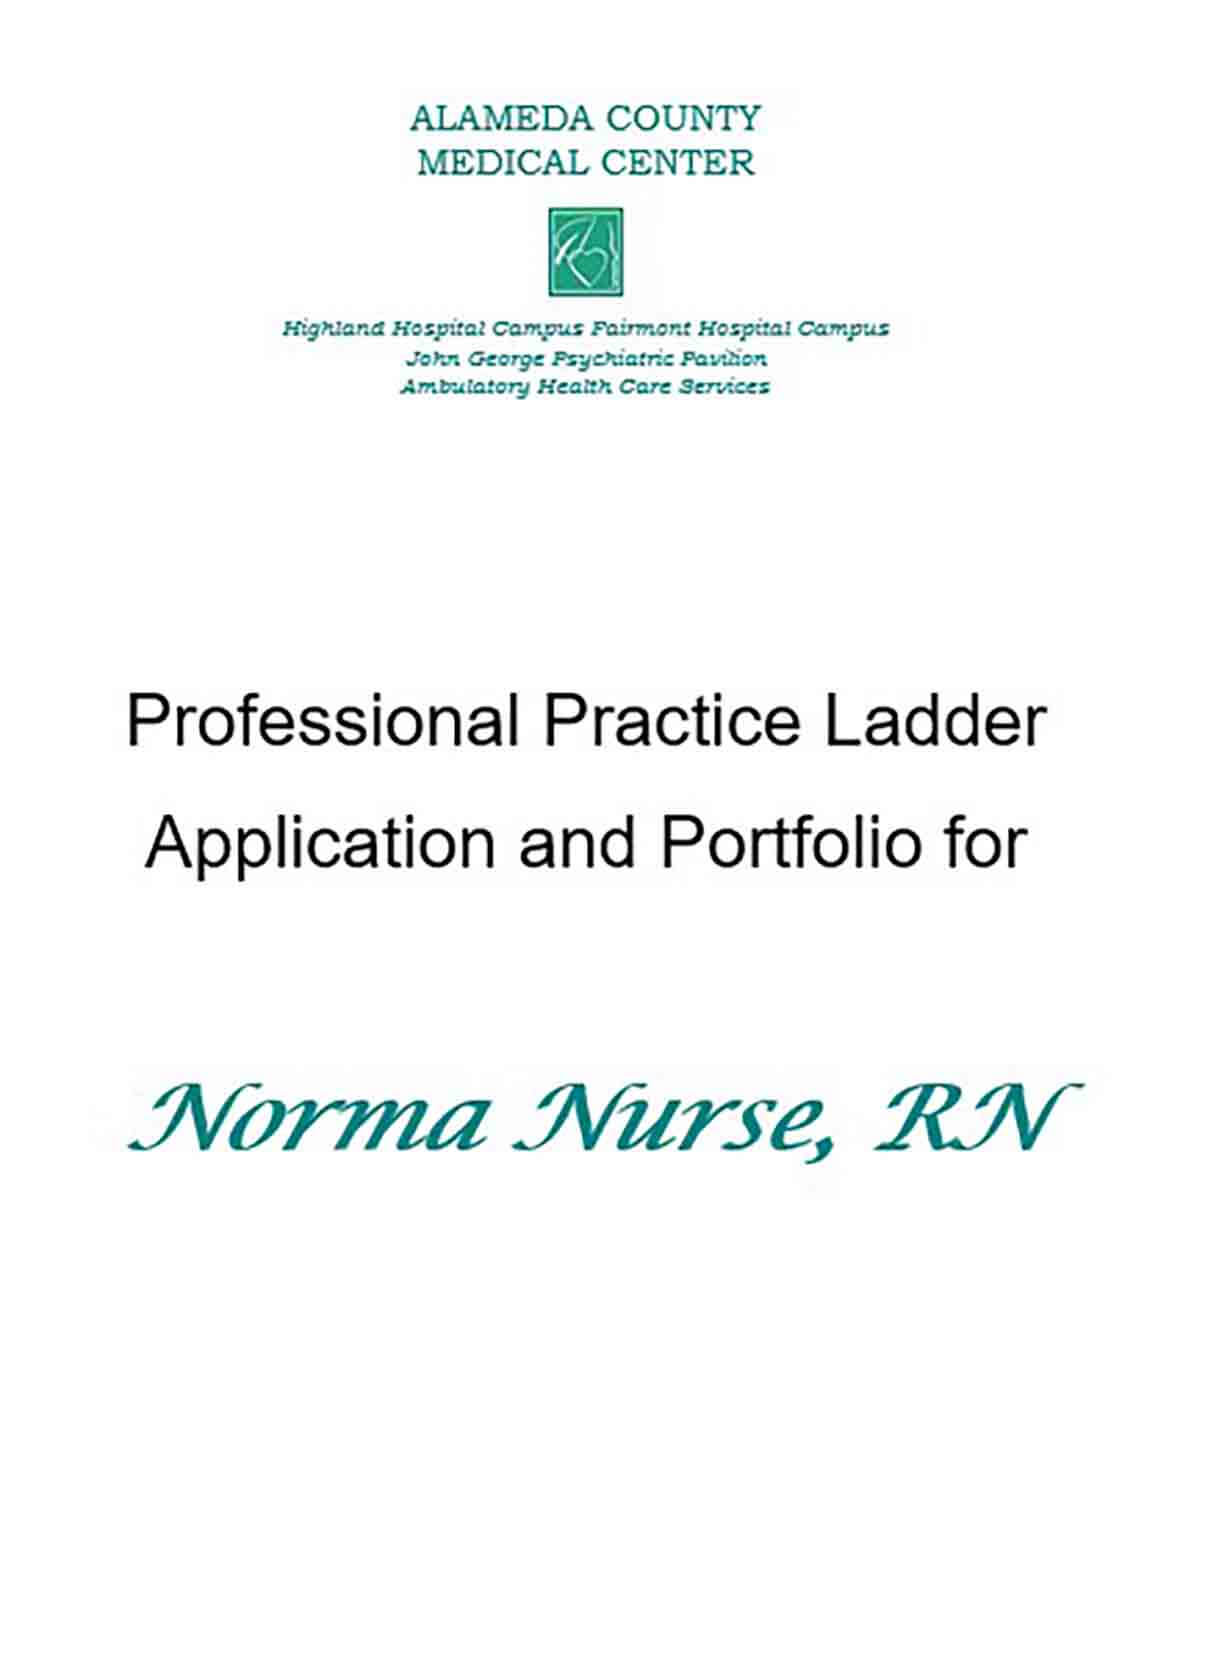 Nursing Recommendation Letter Sample